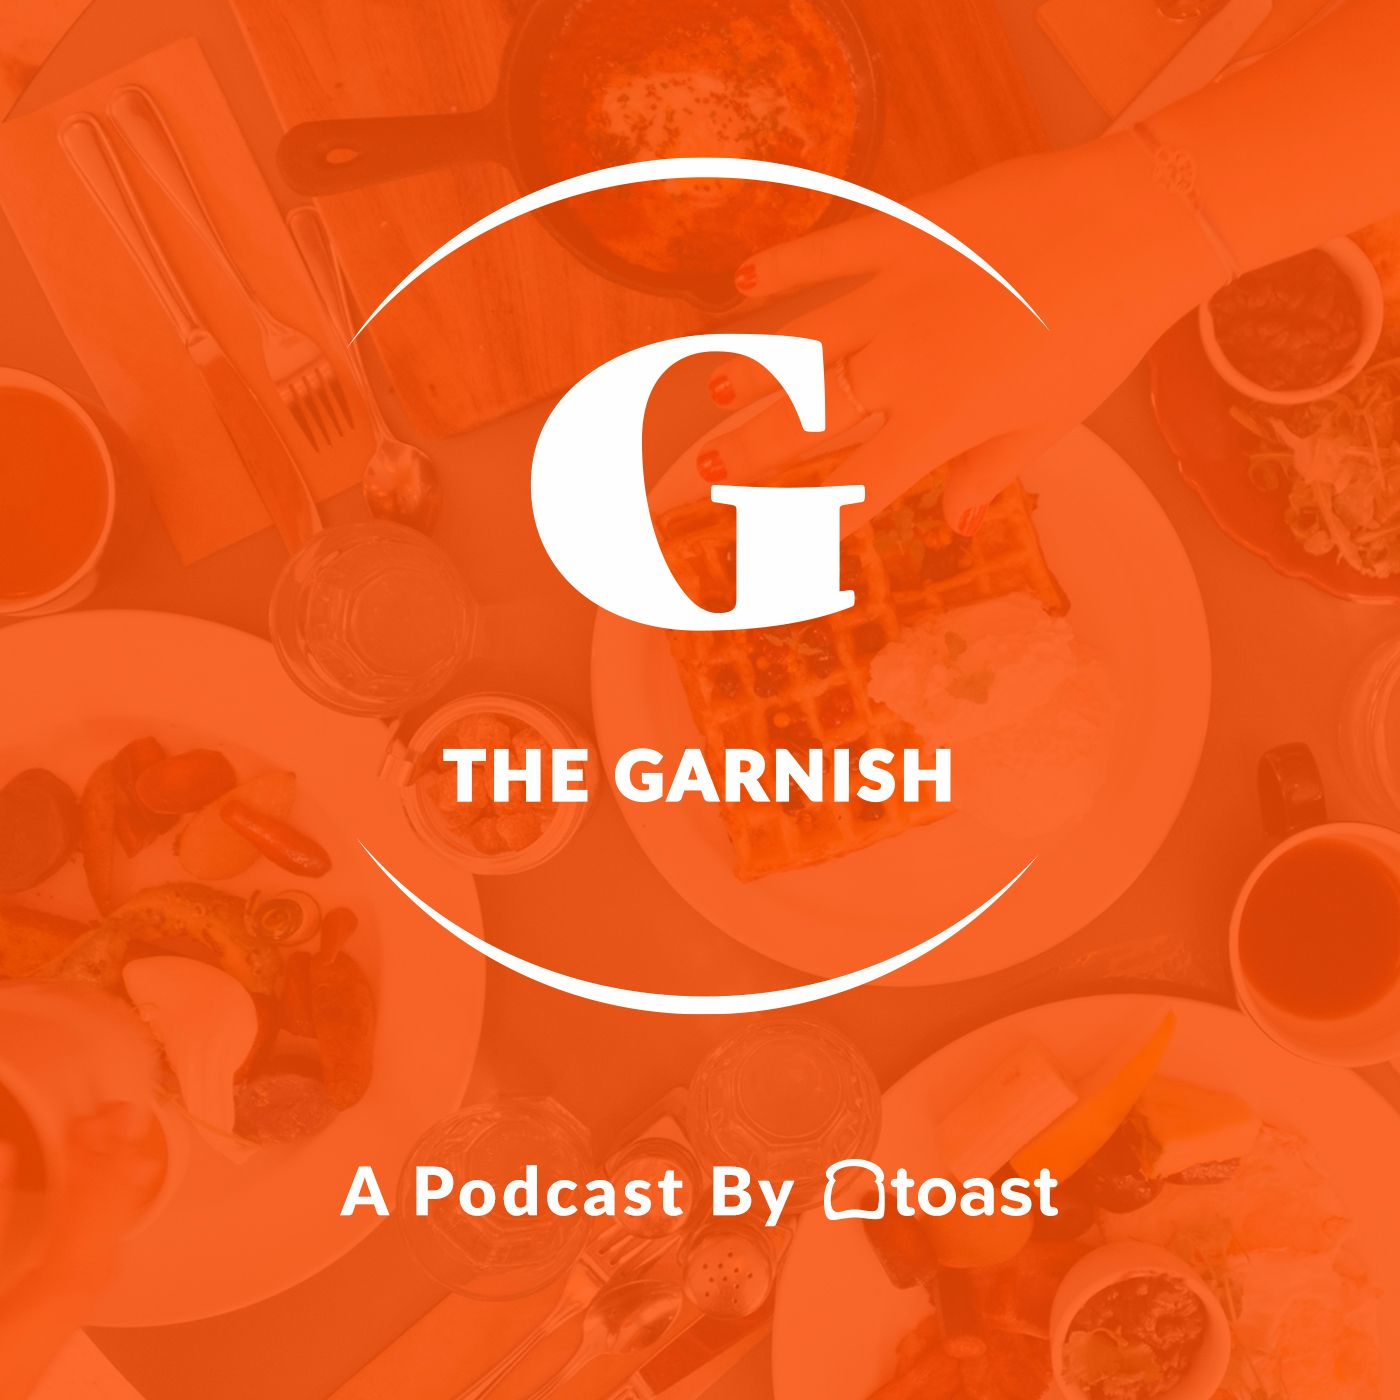 The Garnish: A Podcast by Toast